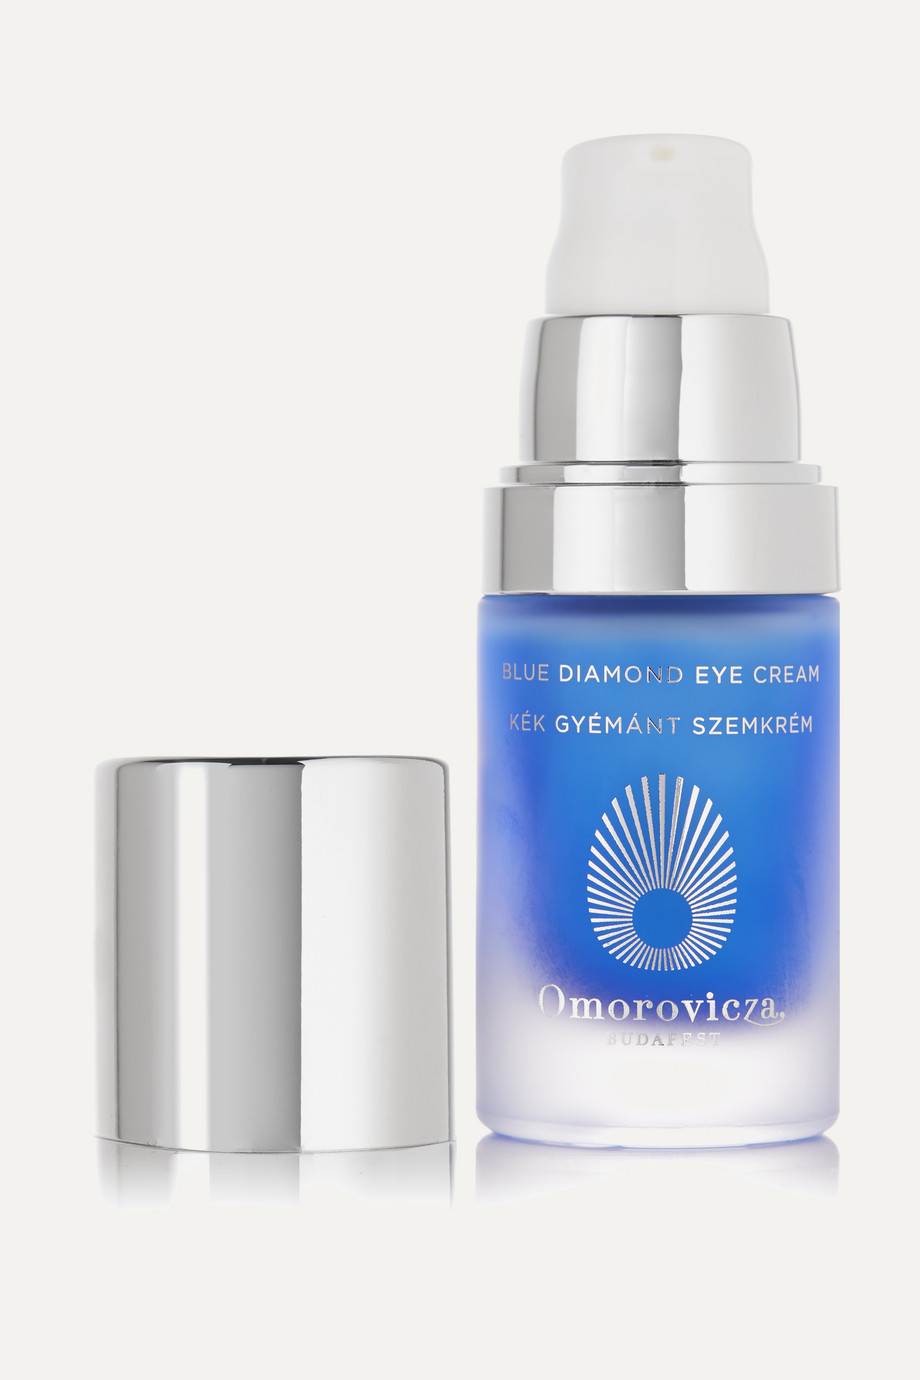 Omorovicza Blue Diamond Eye Cream, 15ml